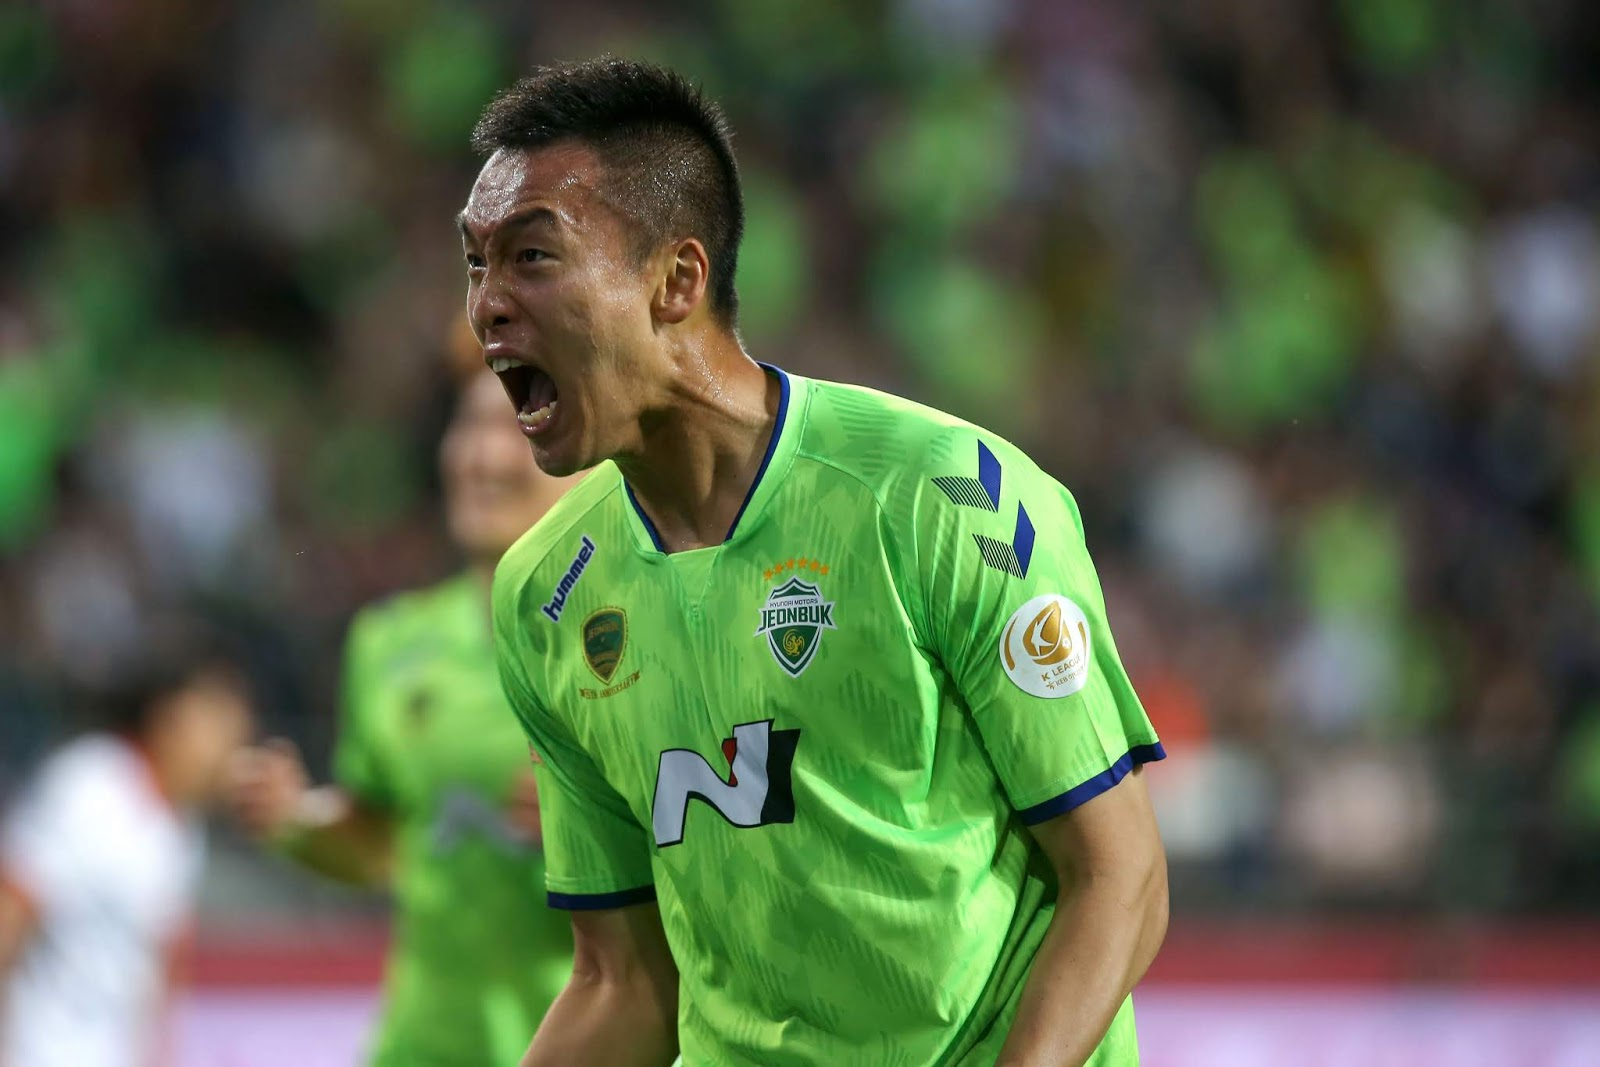 K League 1 Preview: Jeonbuk Hyundai Motors vs Gyeongnam FC